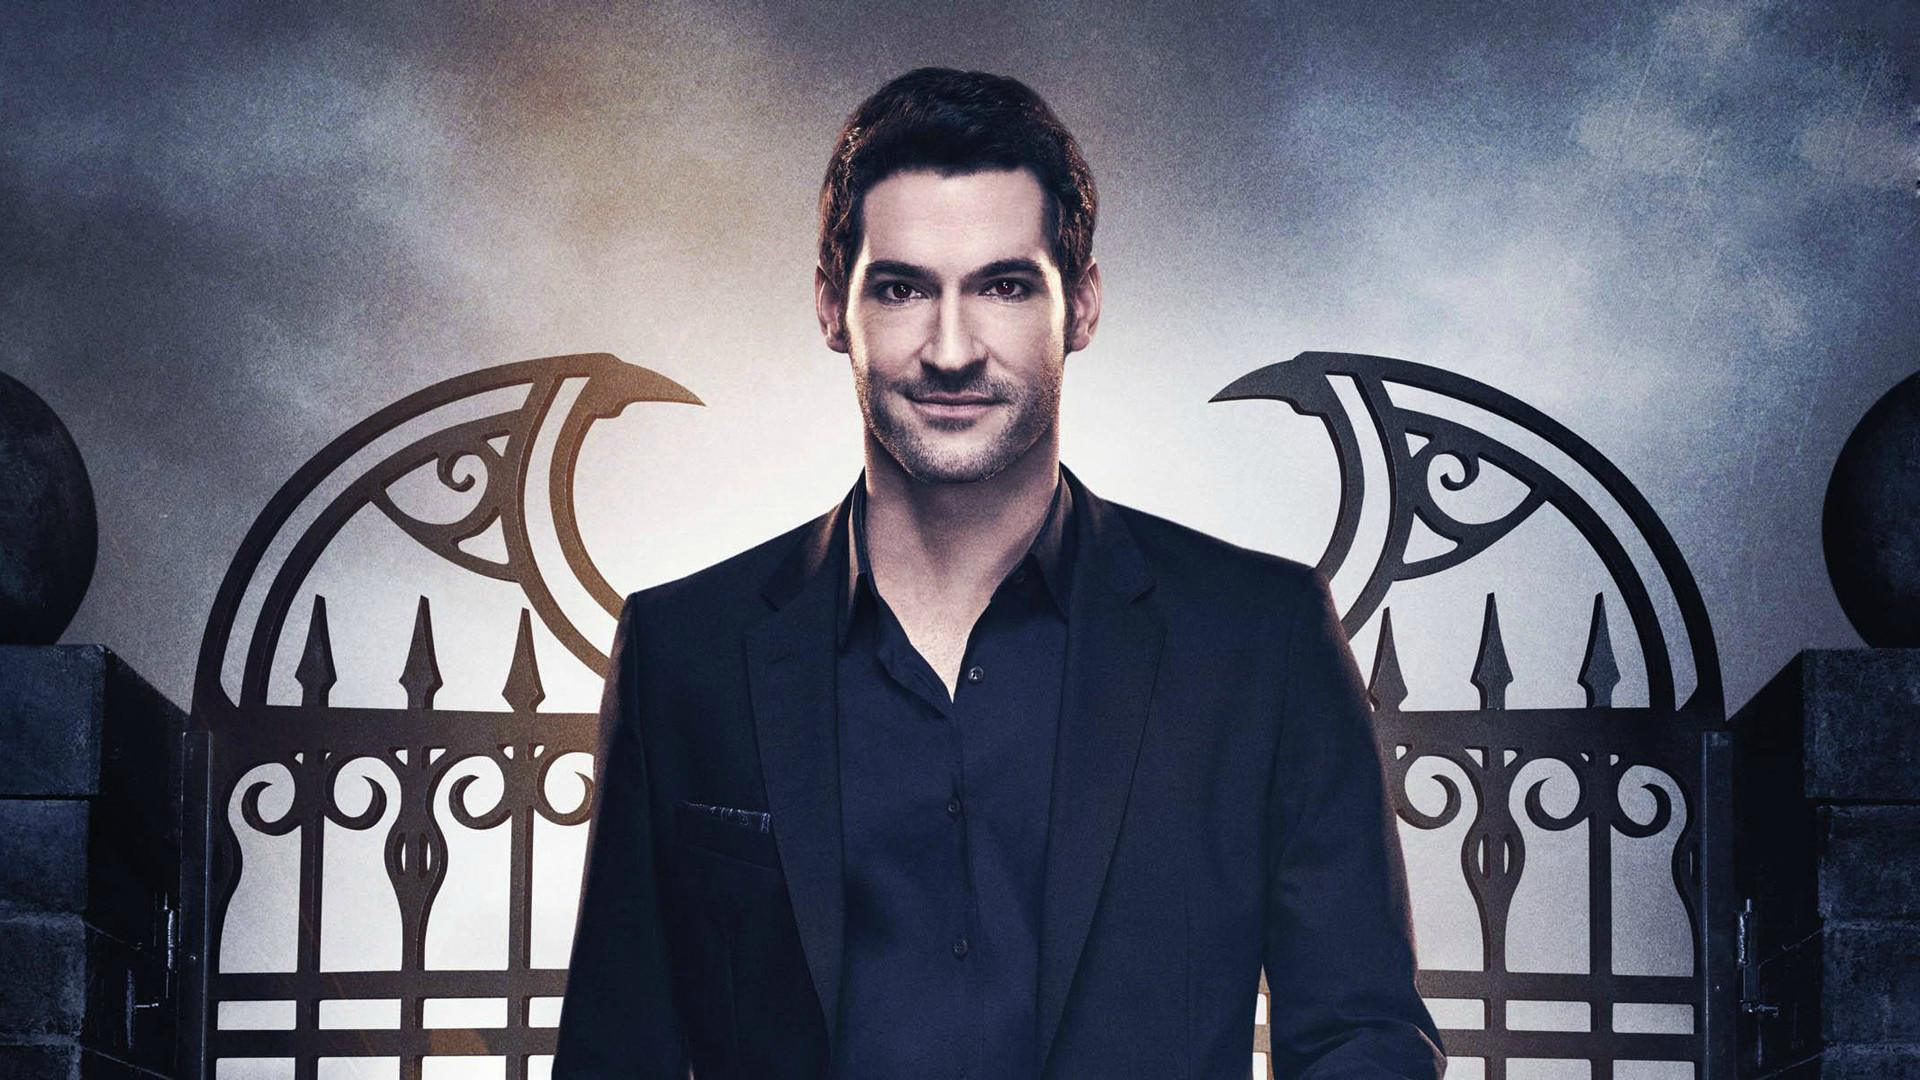 Lucifer Season 6 Release Status Confirmed by Netflix ahead of Season 5